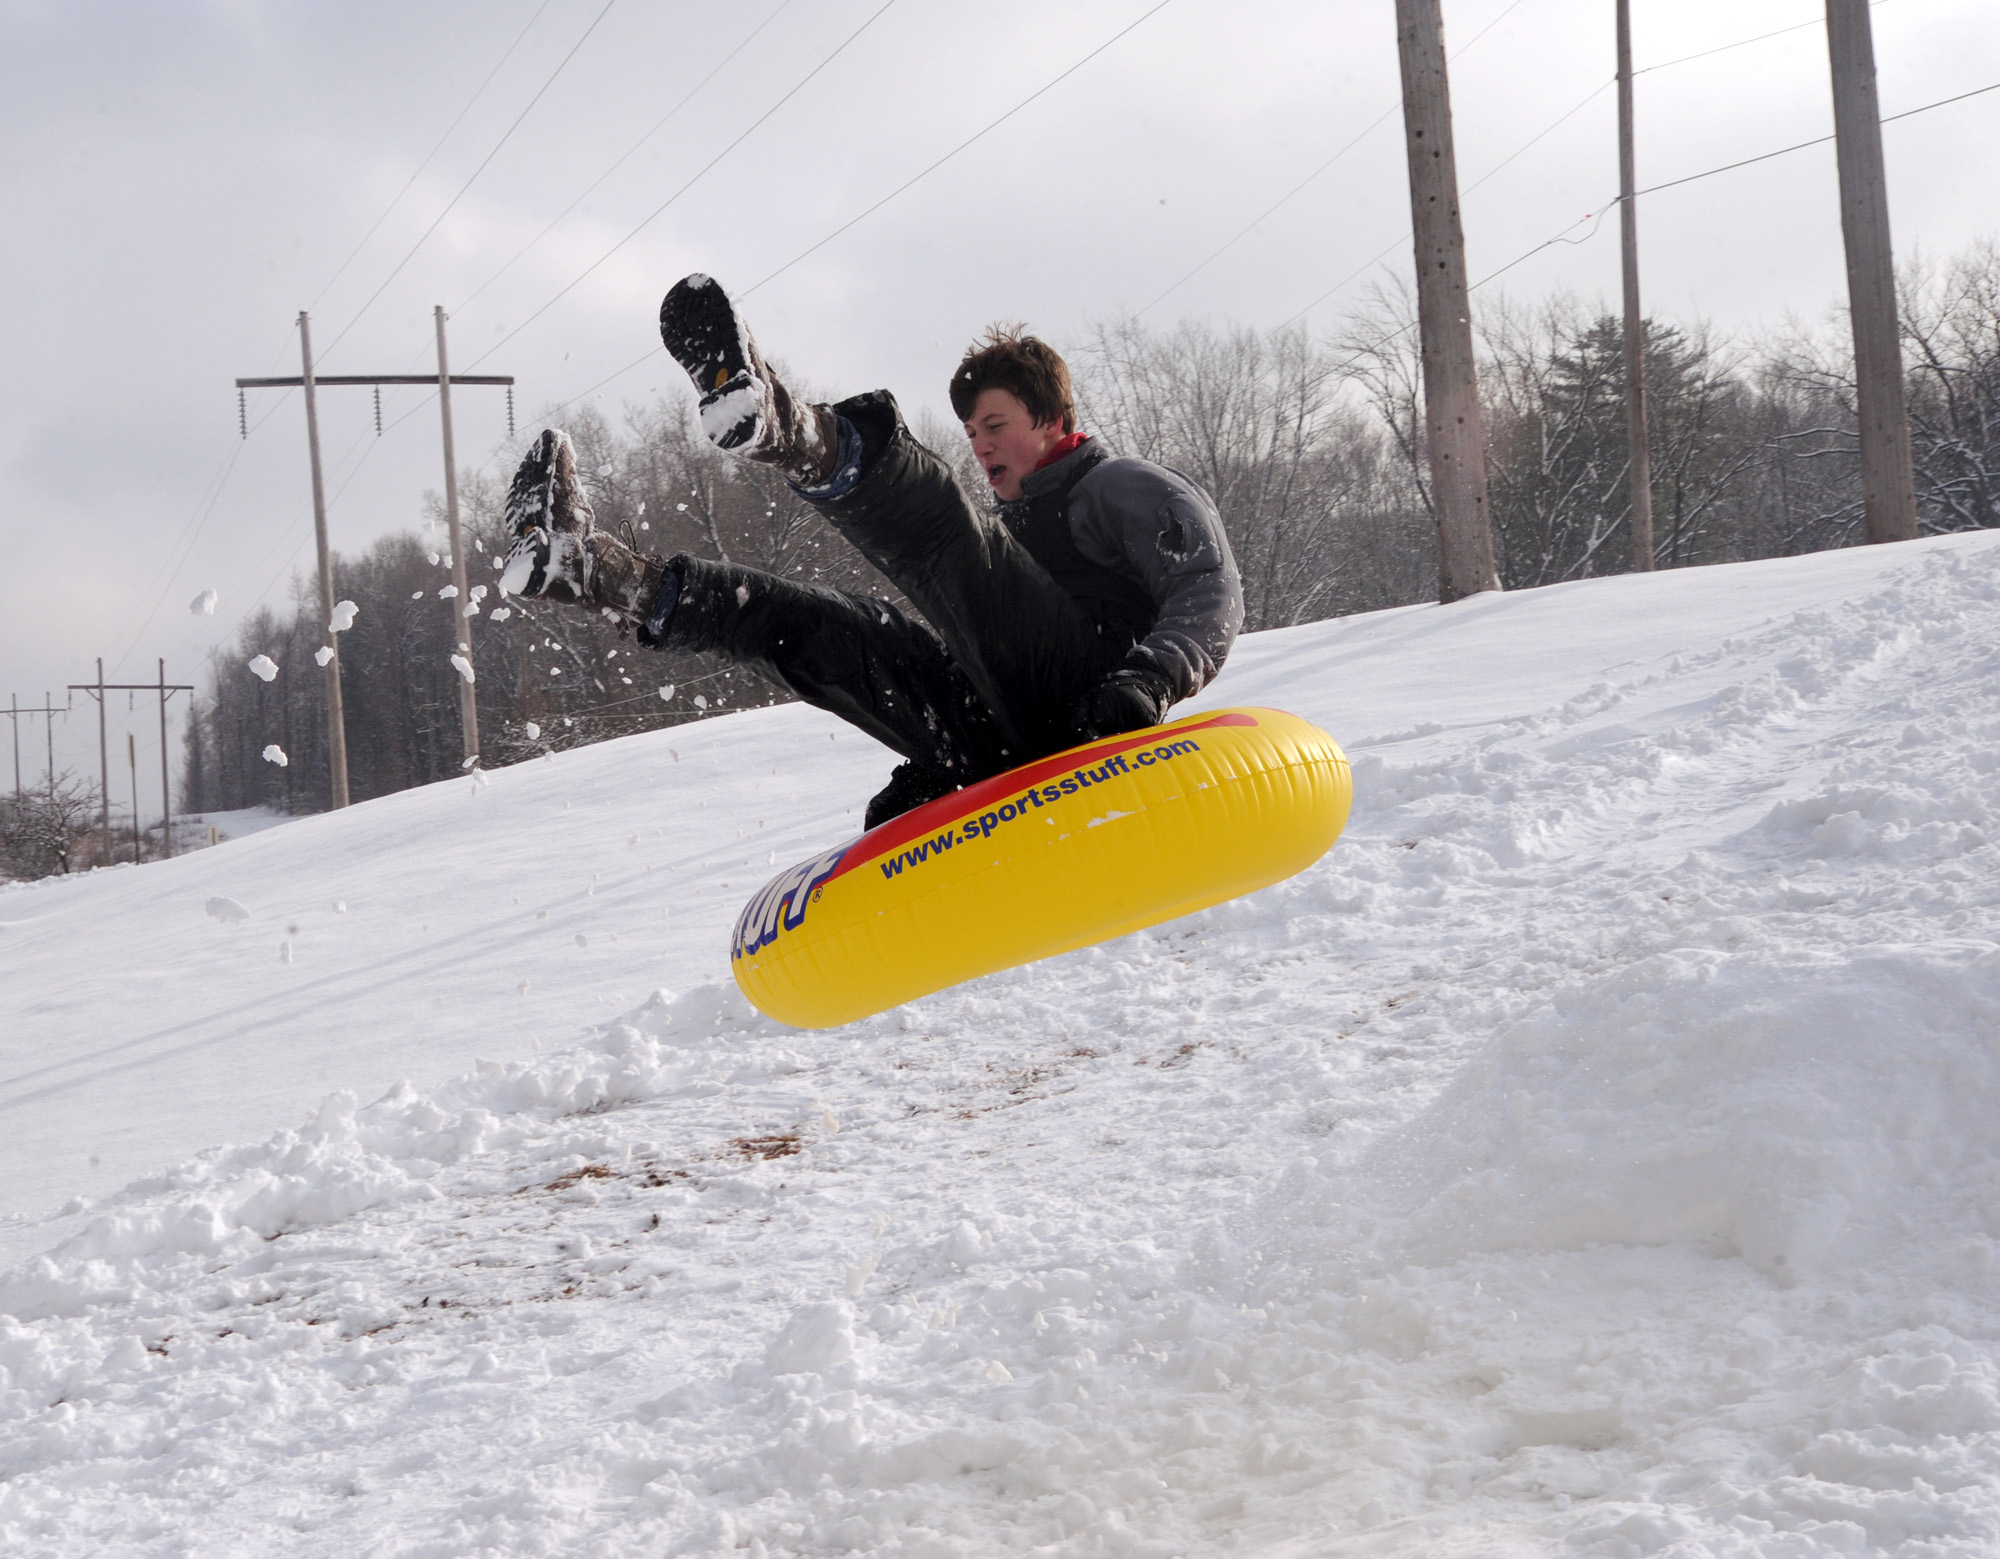 File Photo Of A Teen Riding On A Snow Tube As He Launches Off Of A